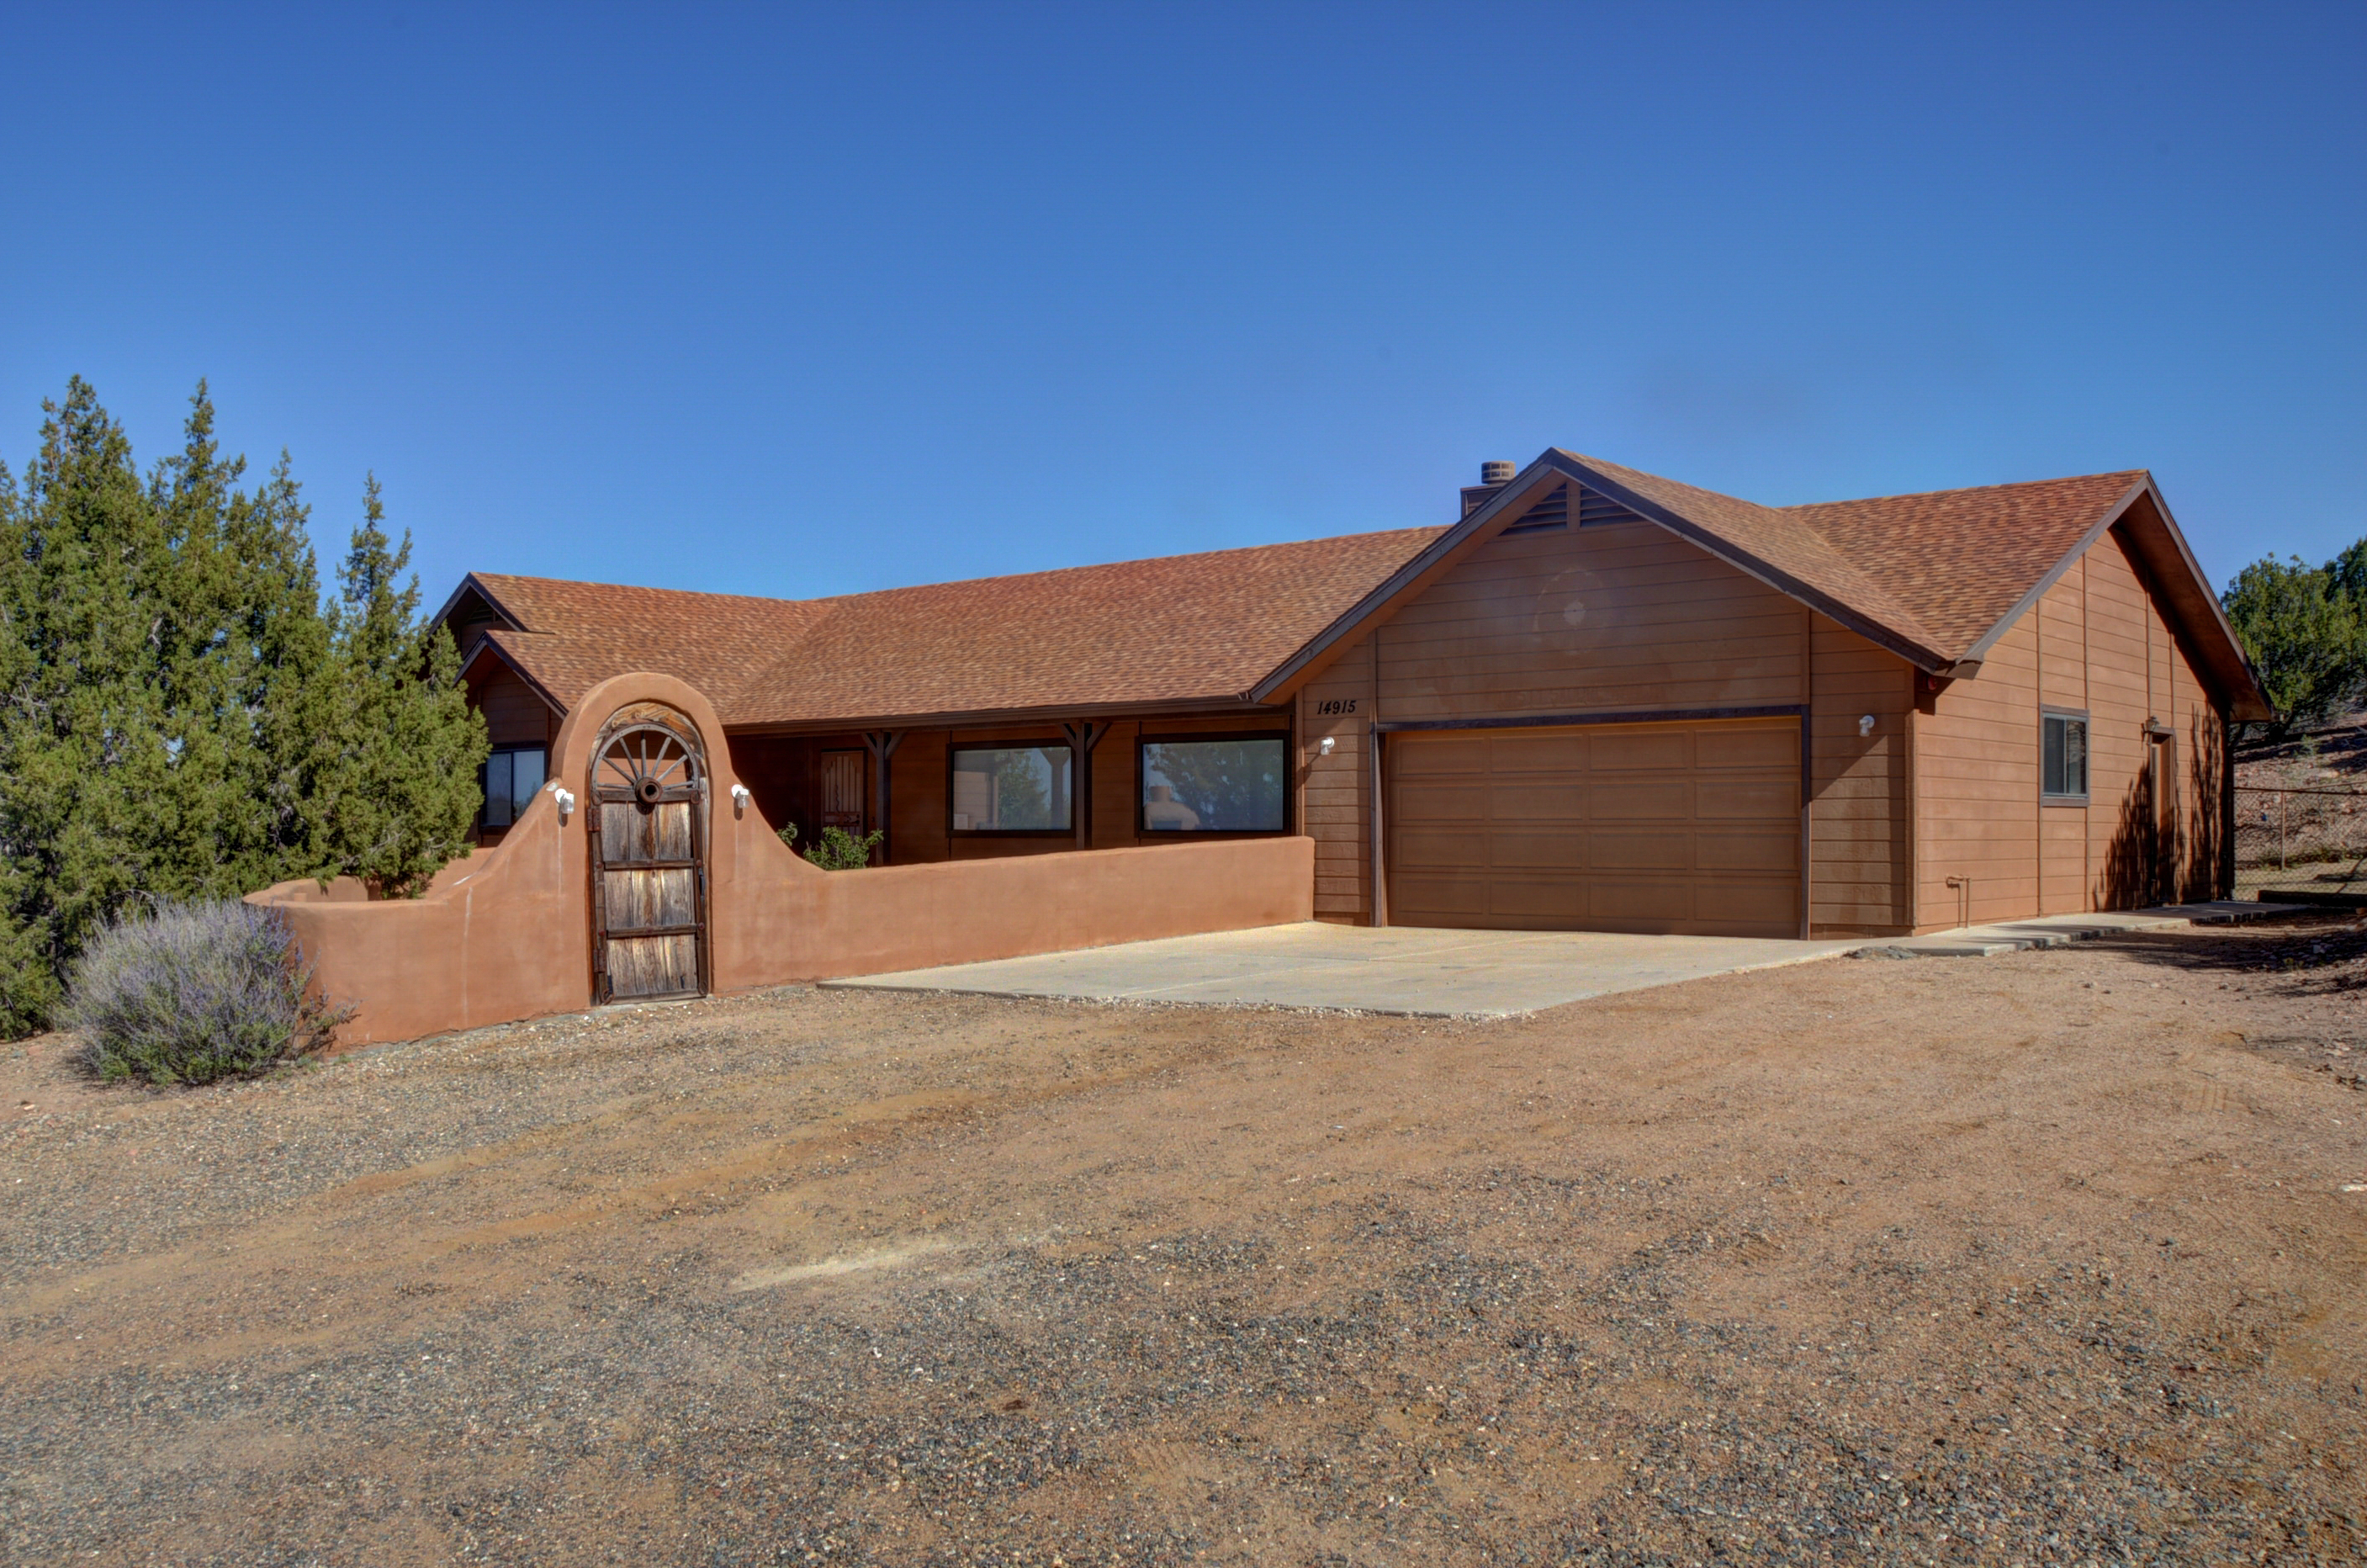 14915 N Hope Rose Road, Prescott, AZ 86305 – SOLD